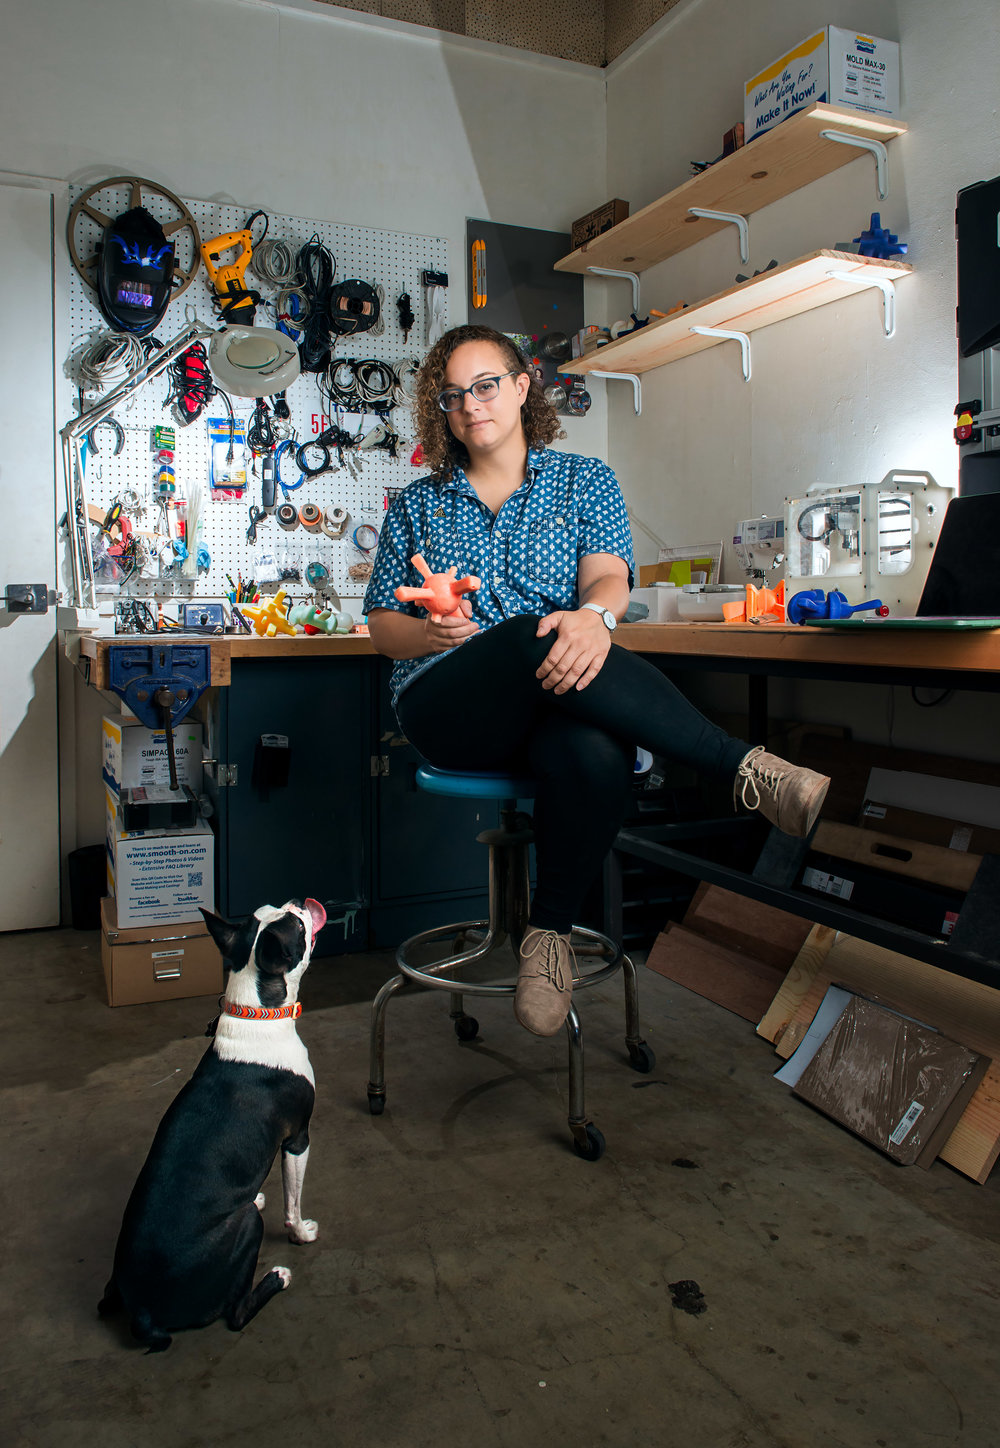 Thursday, Sept 15, 2016 - 